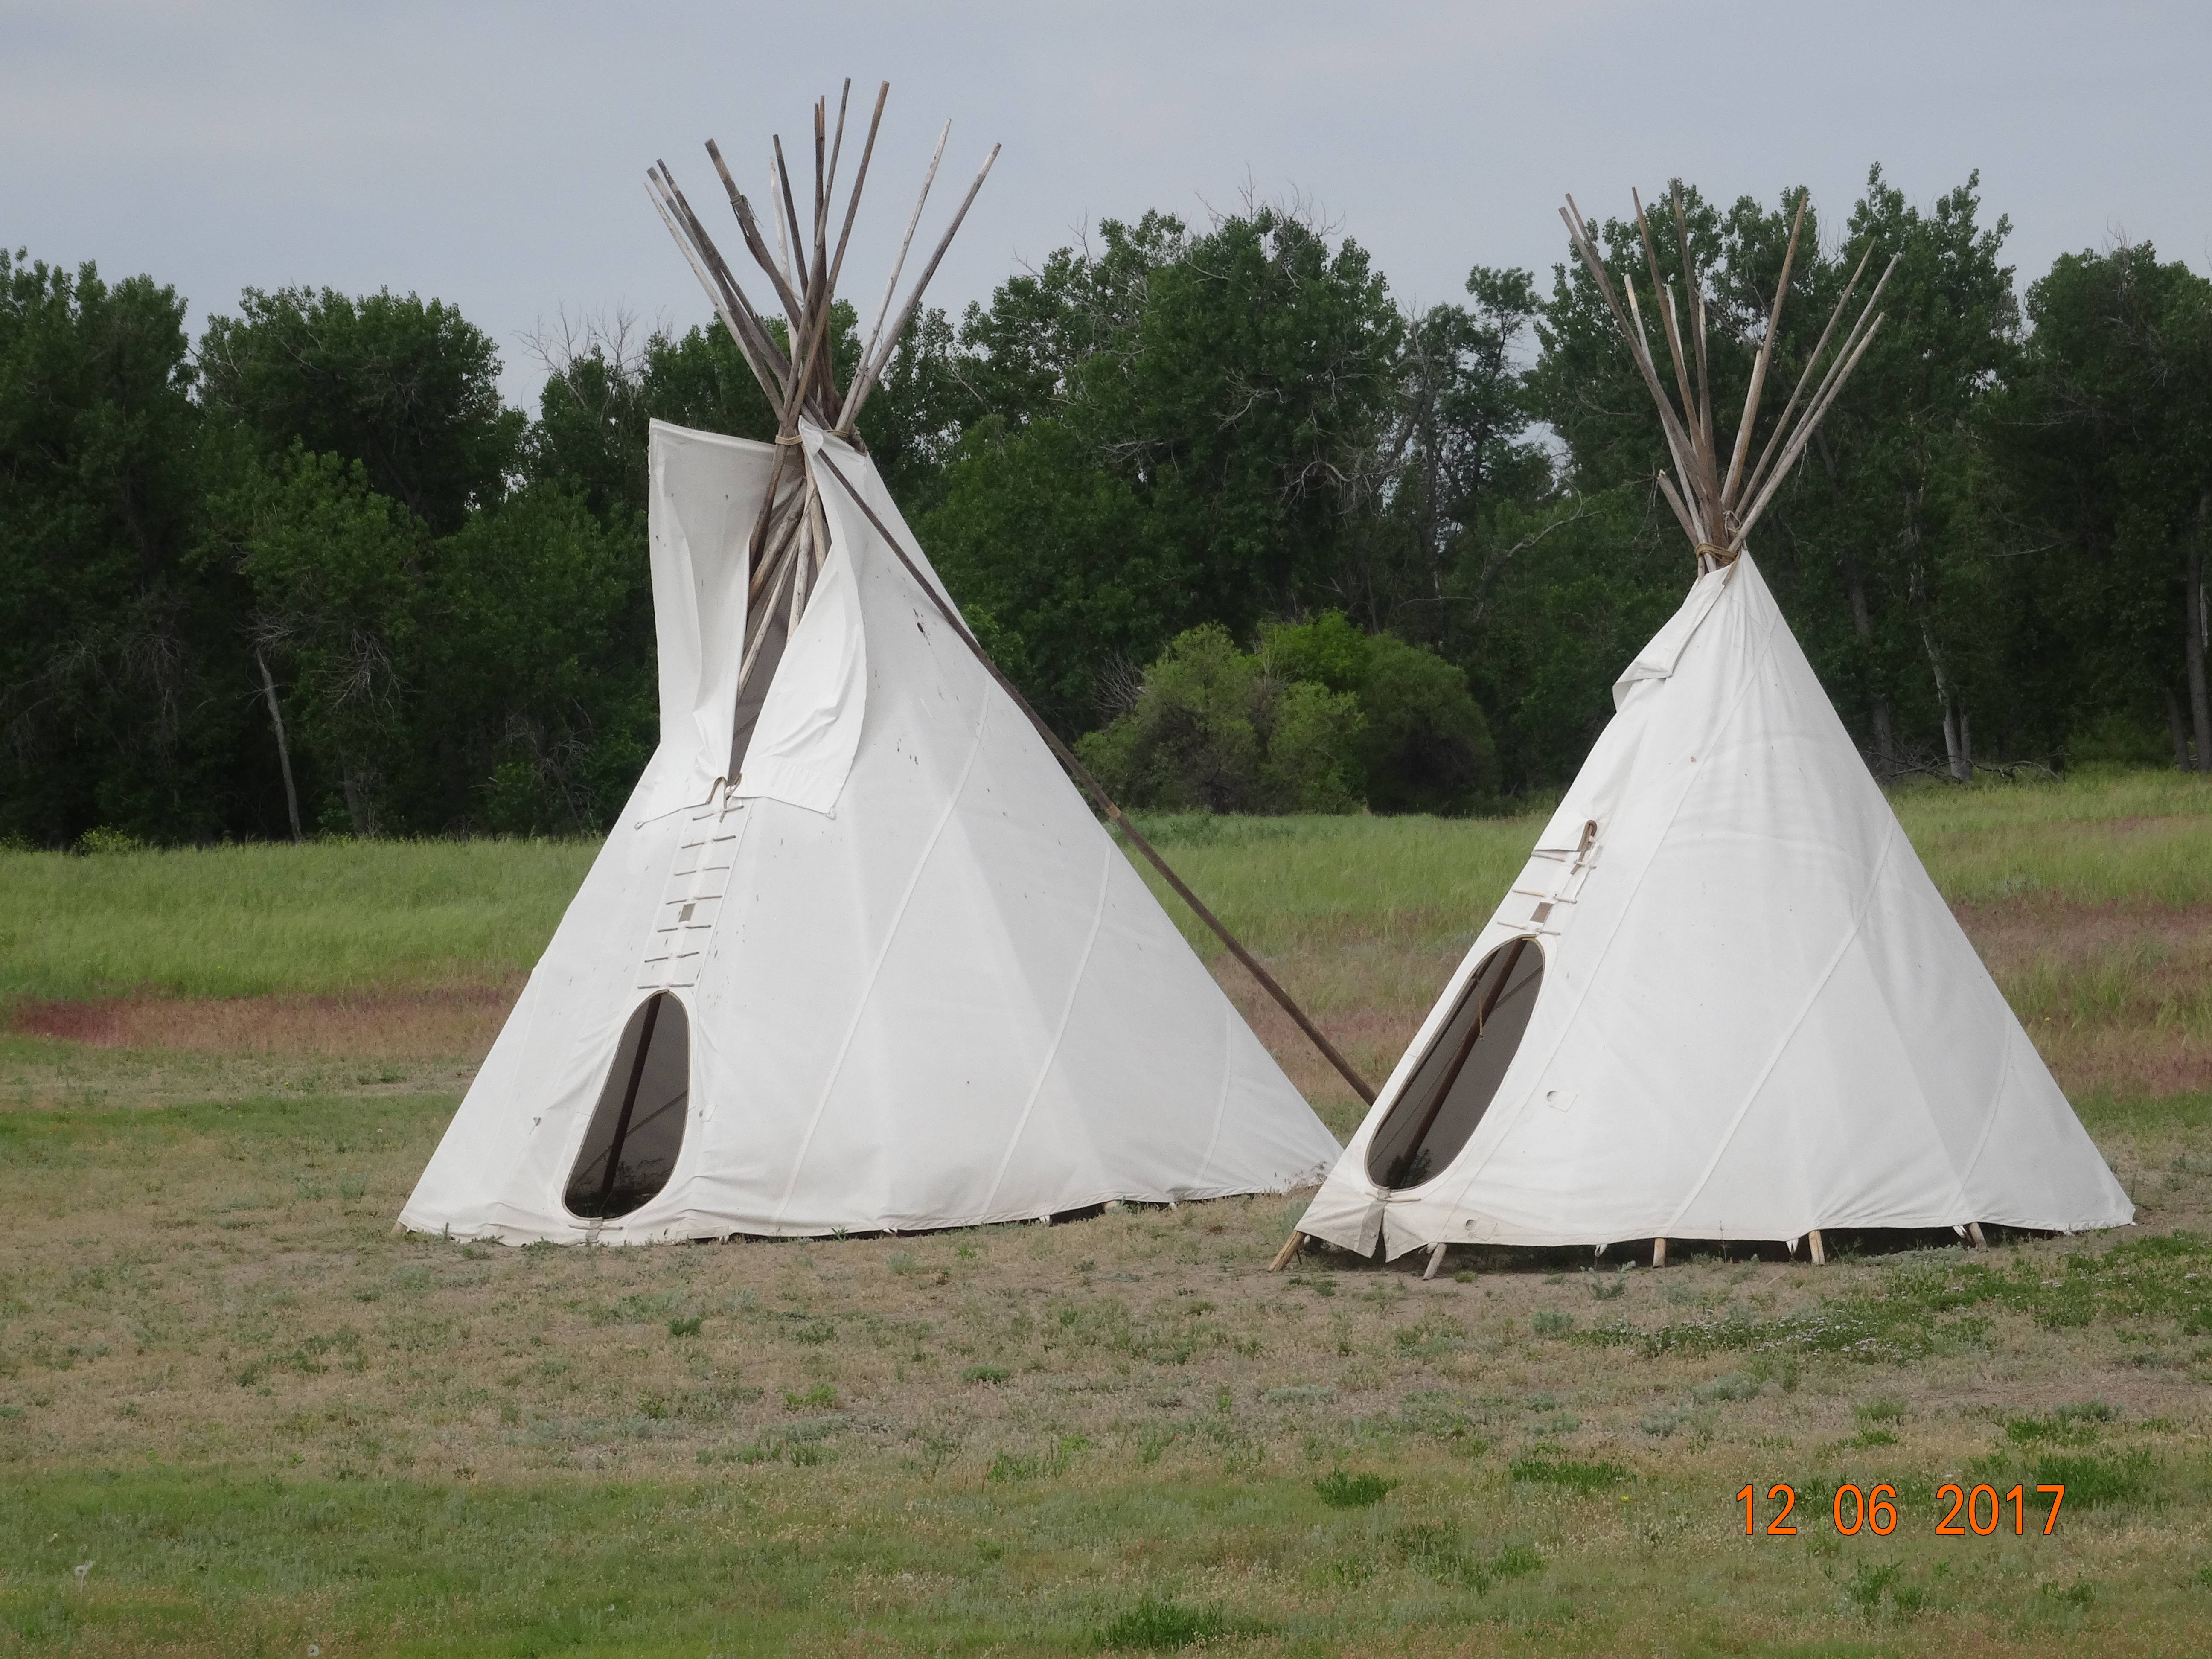 Photo 1: Fort Laramie National Historic Site - Wyoming....